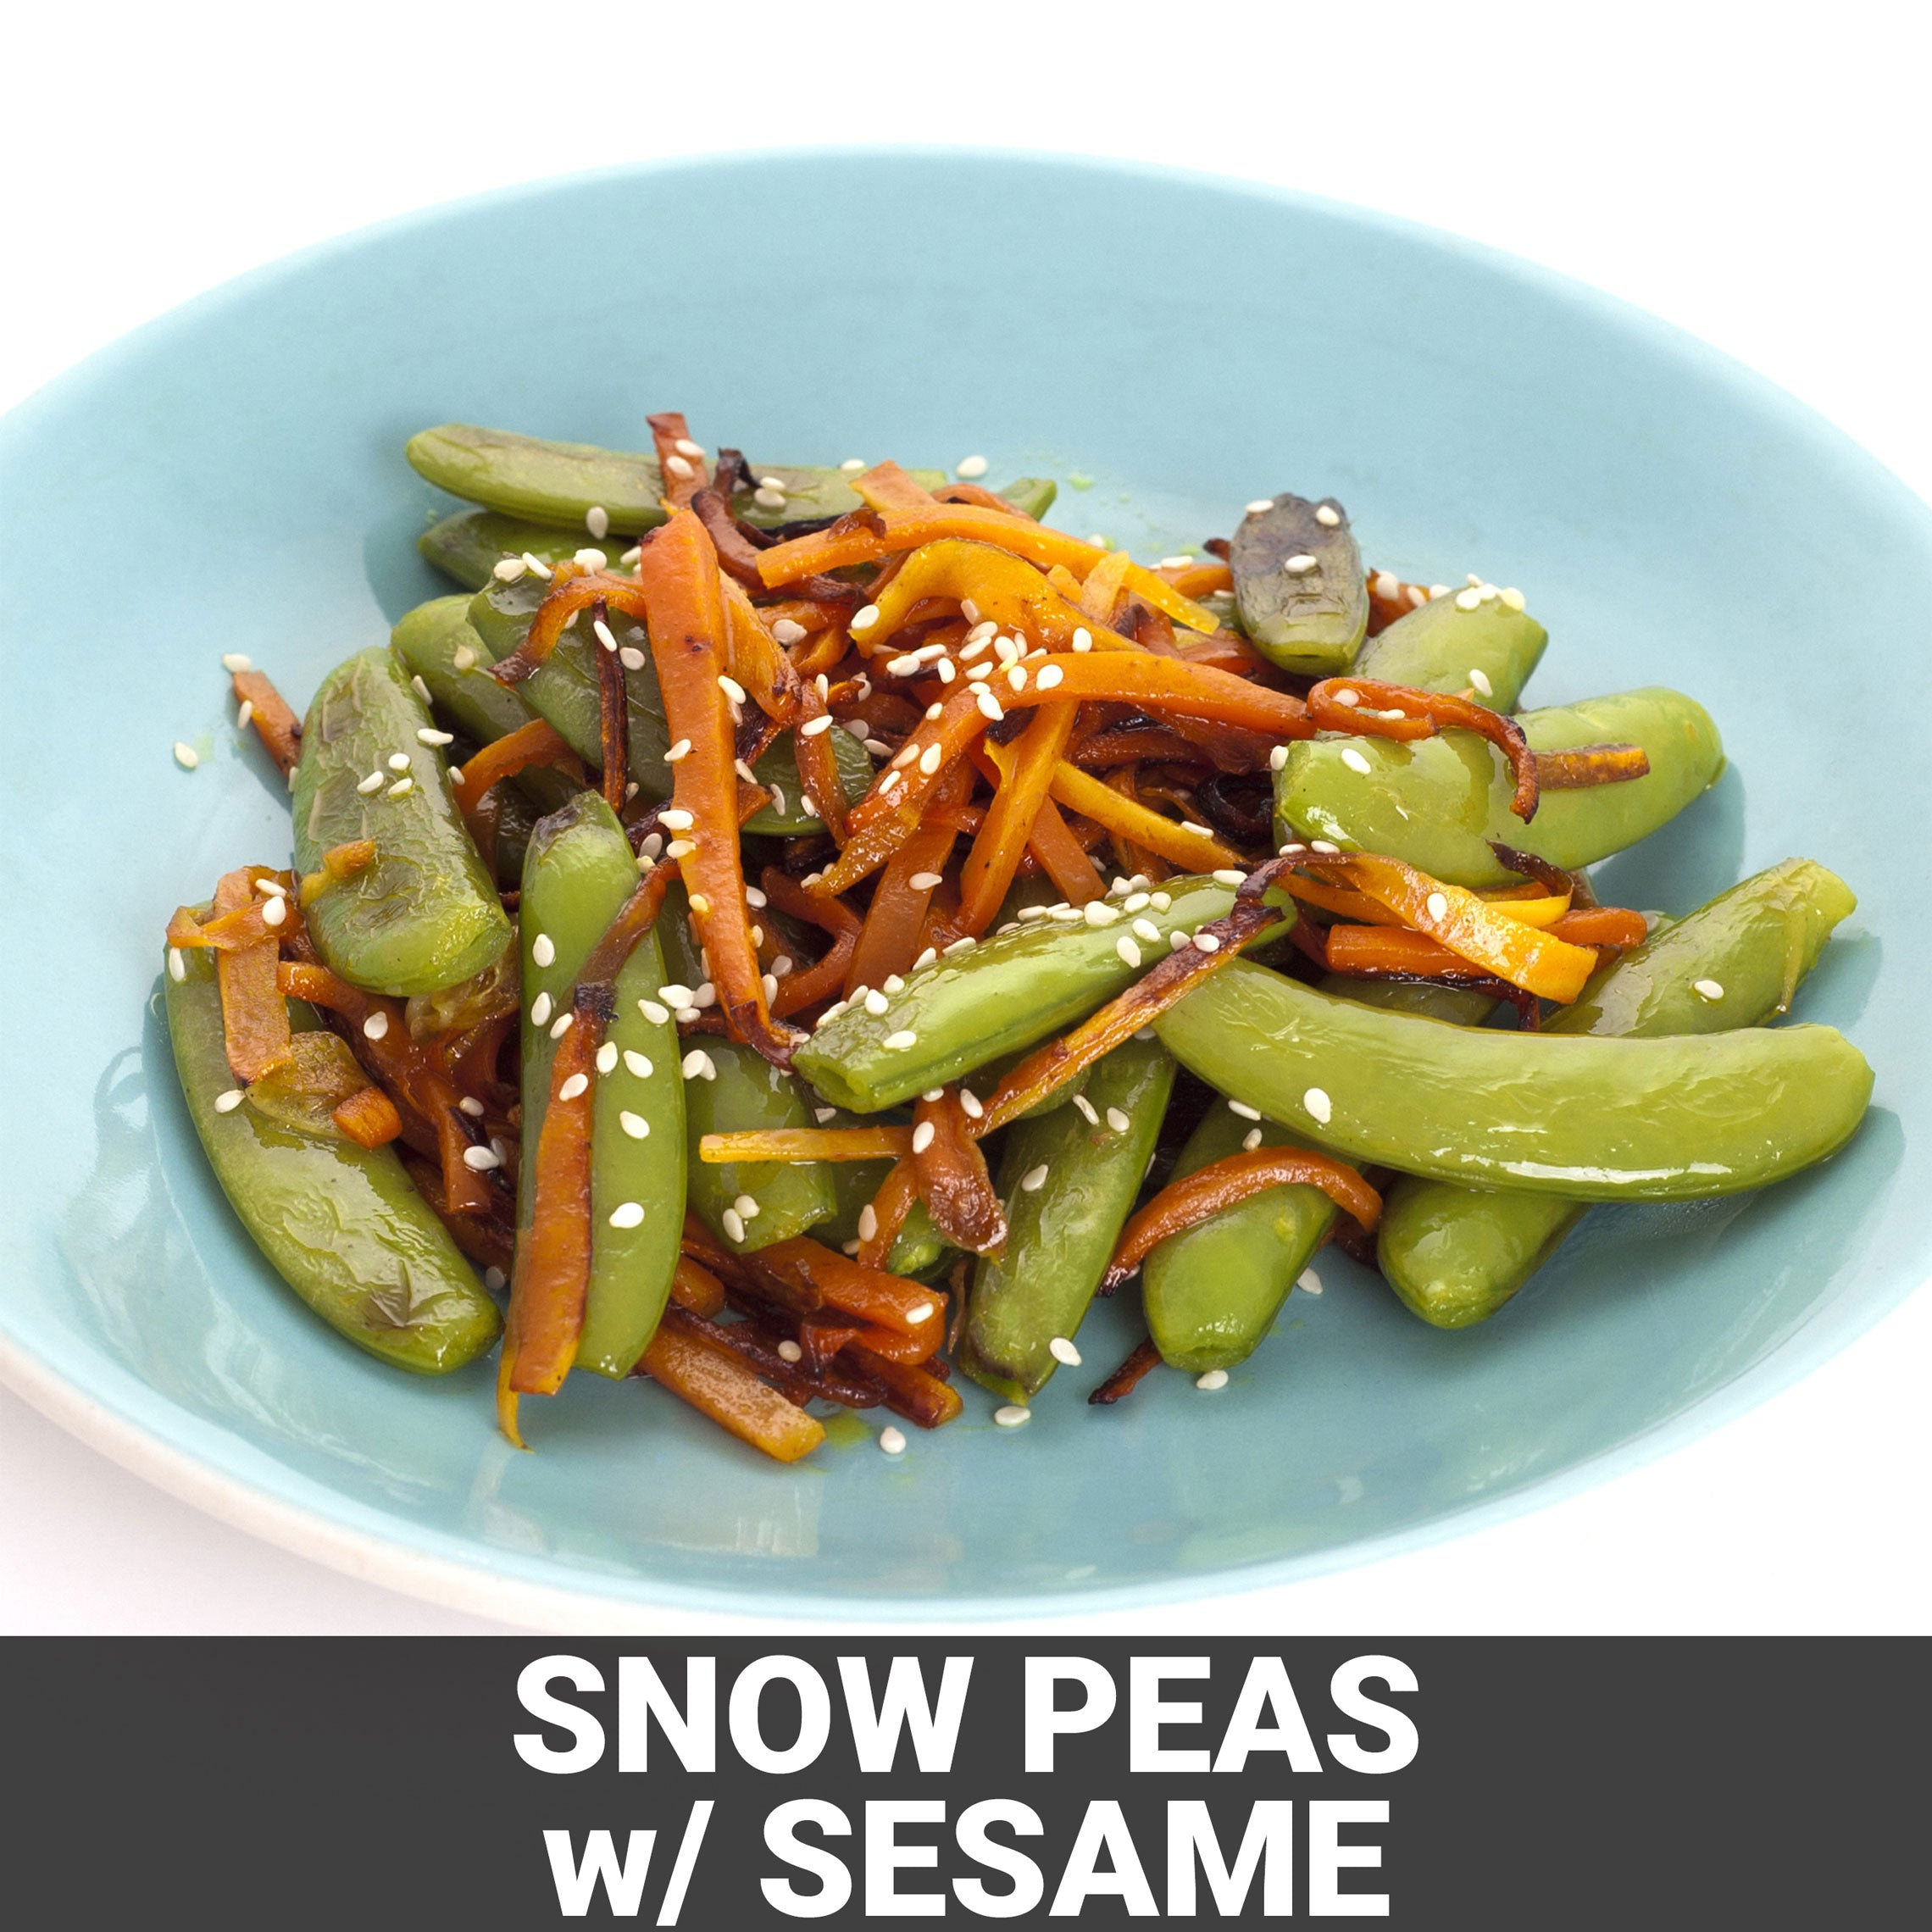 Snow Peas with Sesame Recipe - Foods Alive